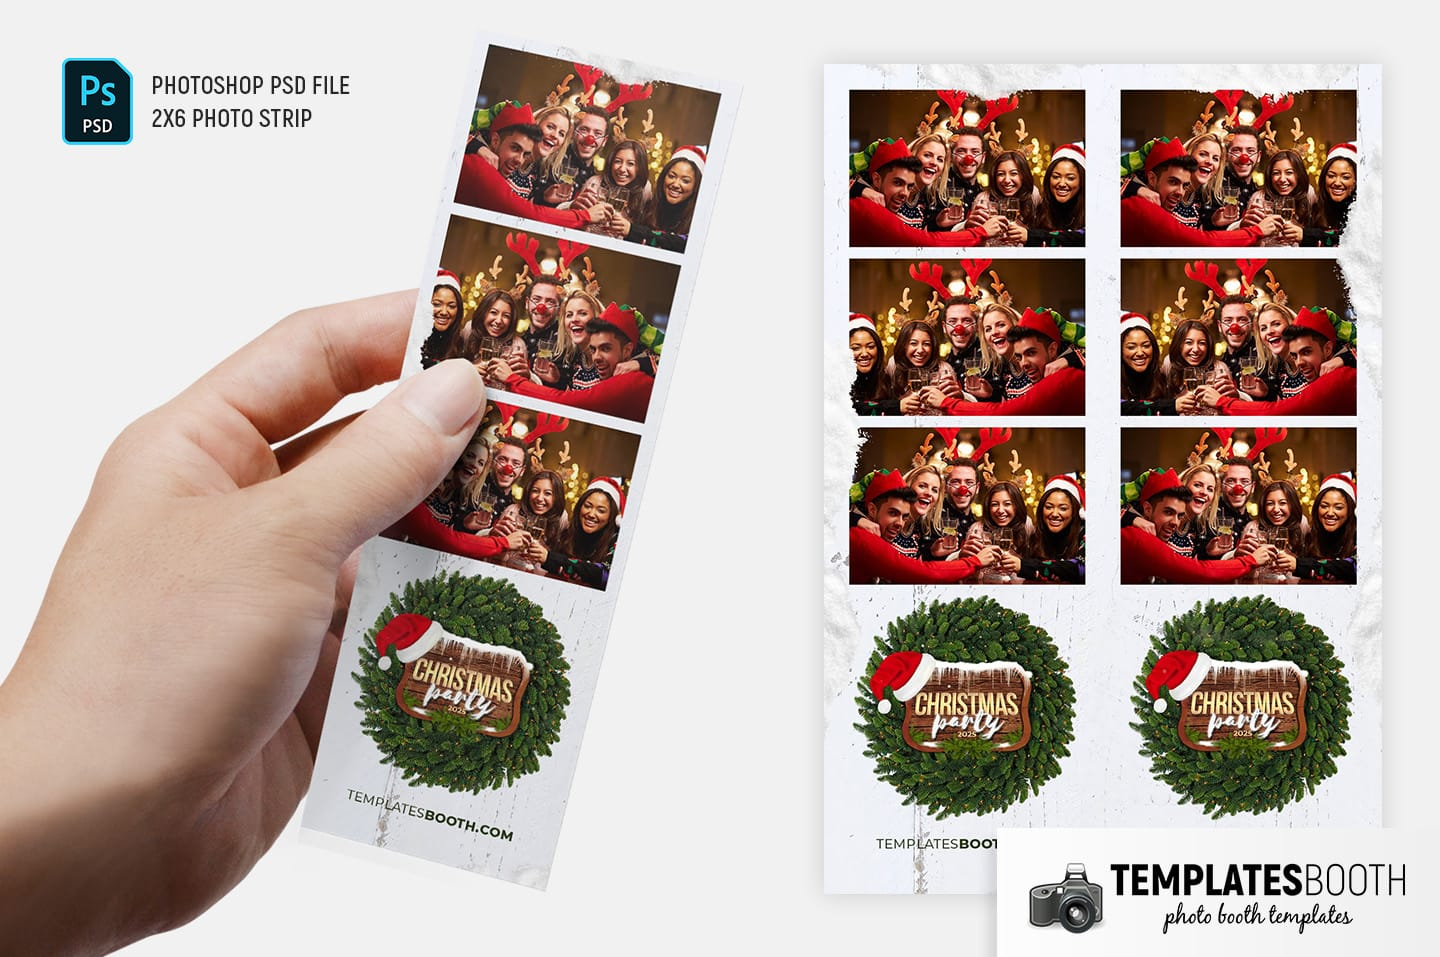 Festive Christmas Photo Booth Template (2x6 photo strip)